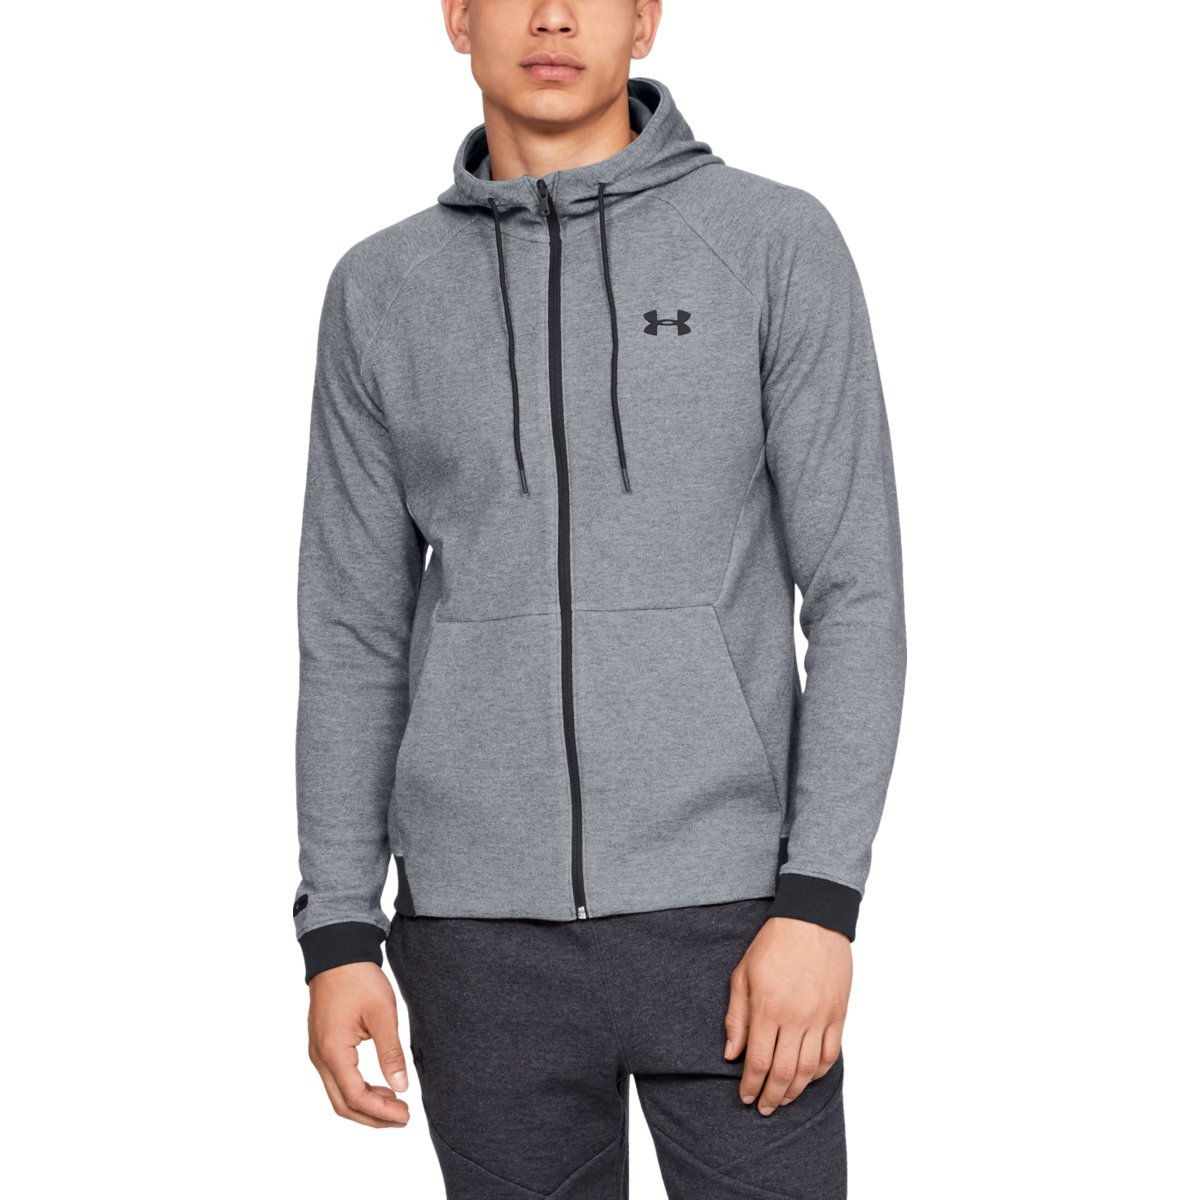 Mikina Unstoppable 2X Knit Fz Grey - Under Armour - M